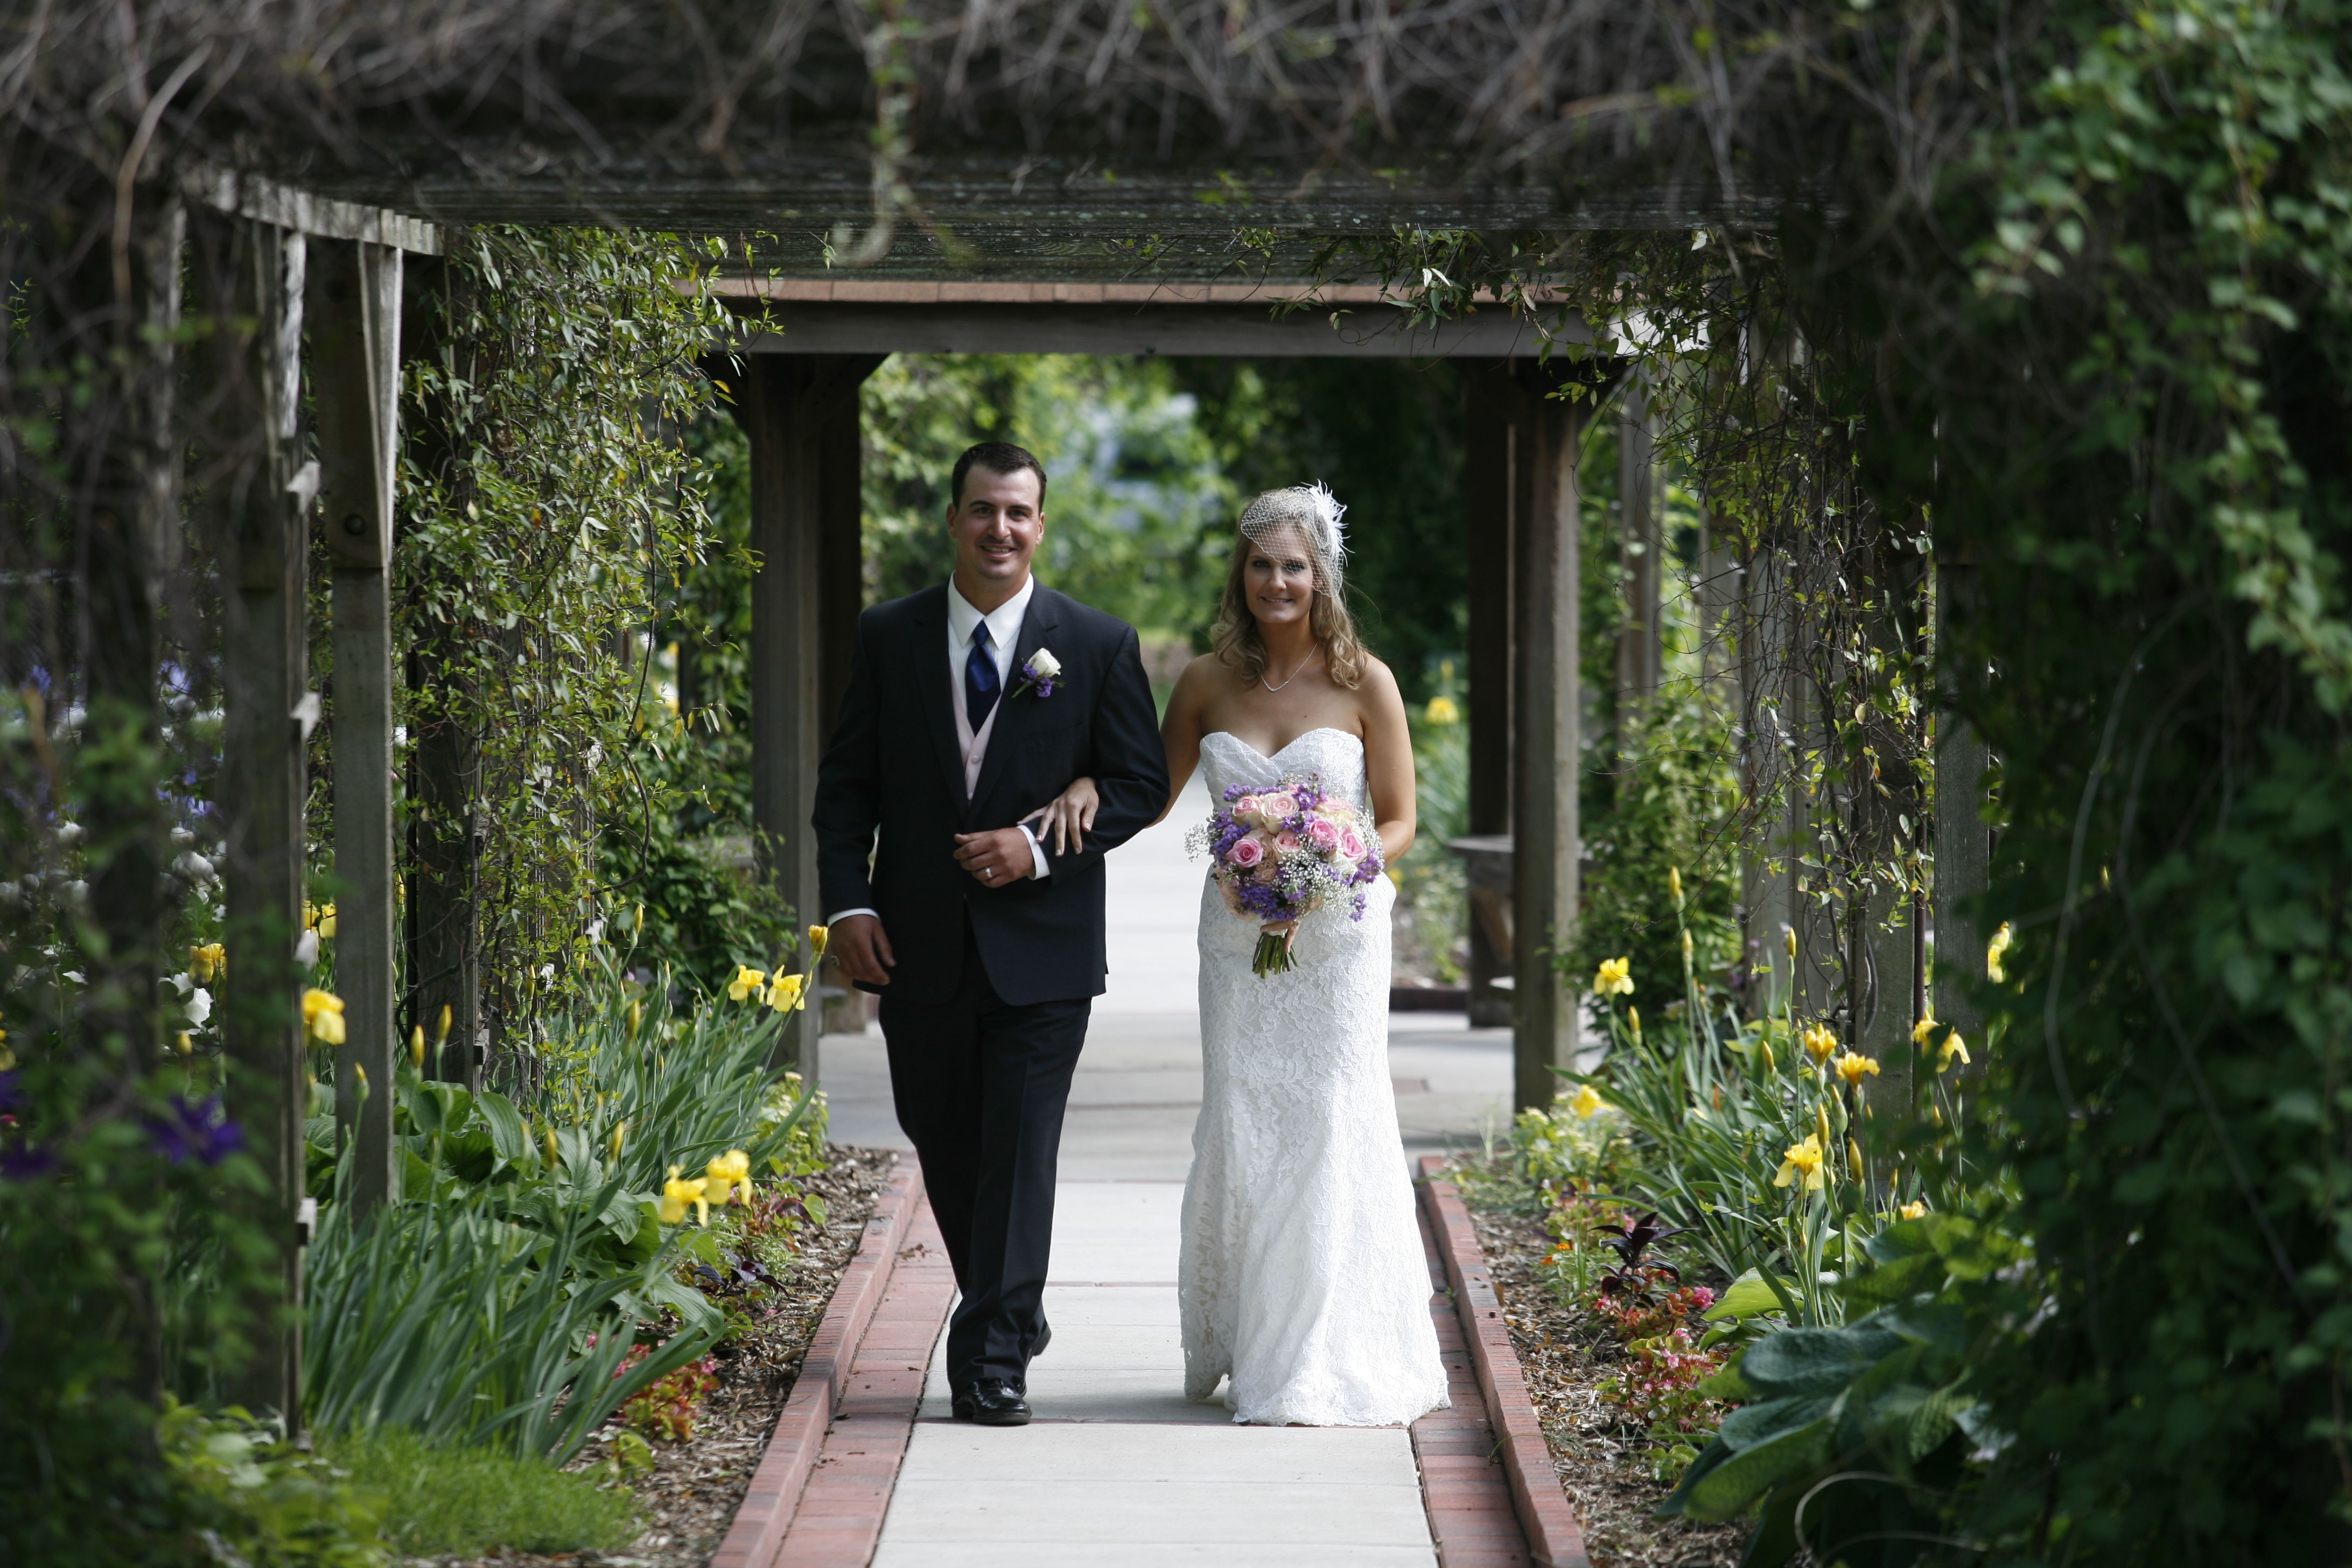 Wedding Ceremony At Bissell House Rose Garden In North St Louis County Stlcowedding